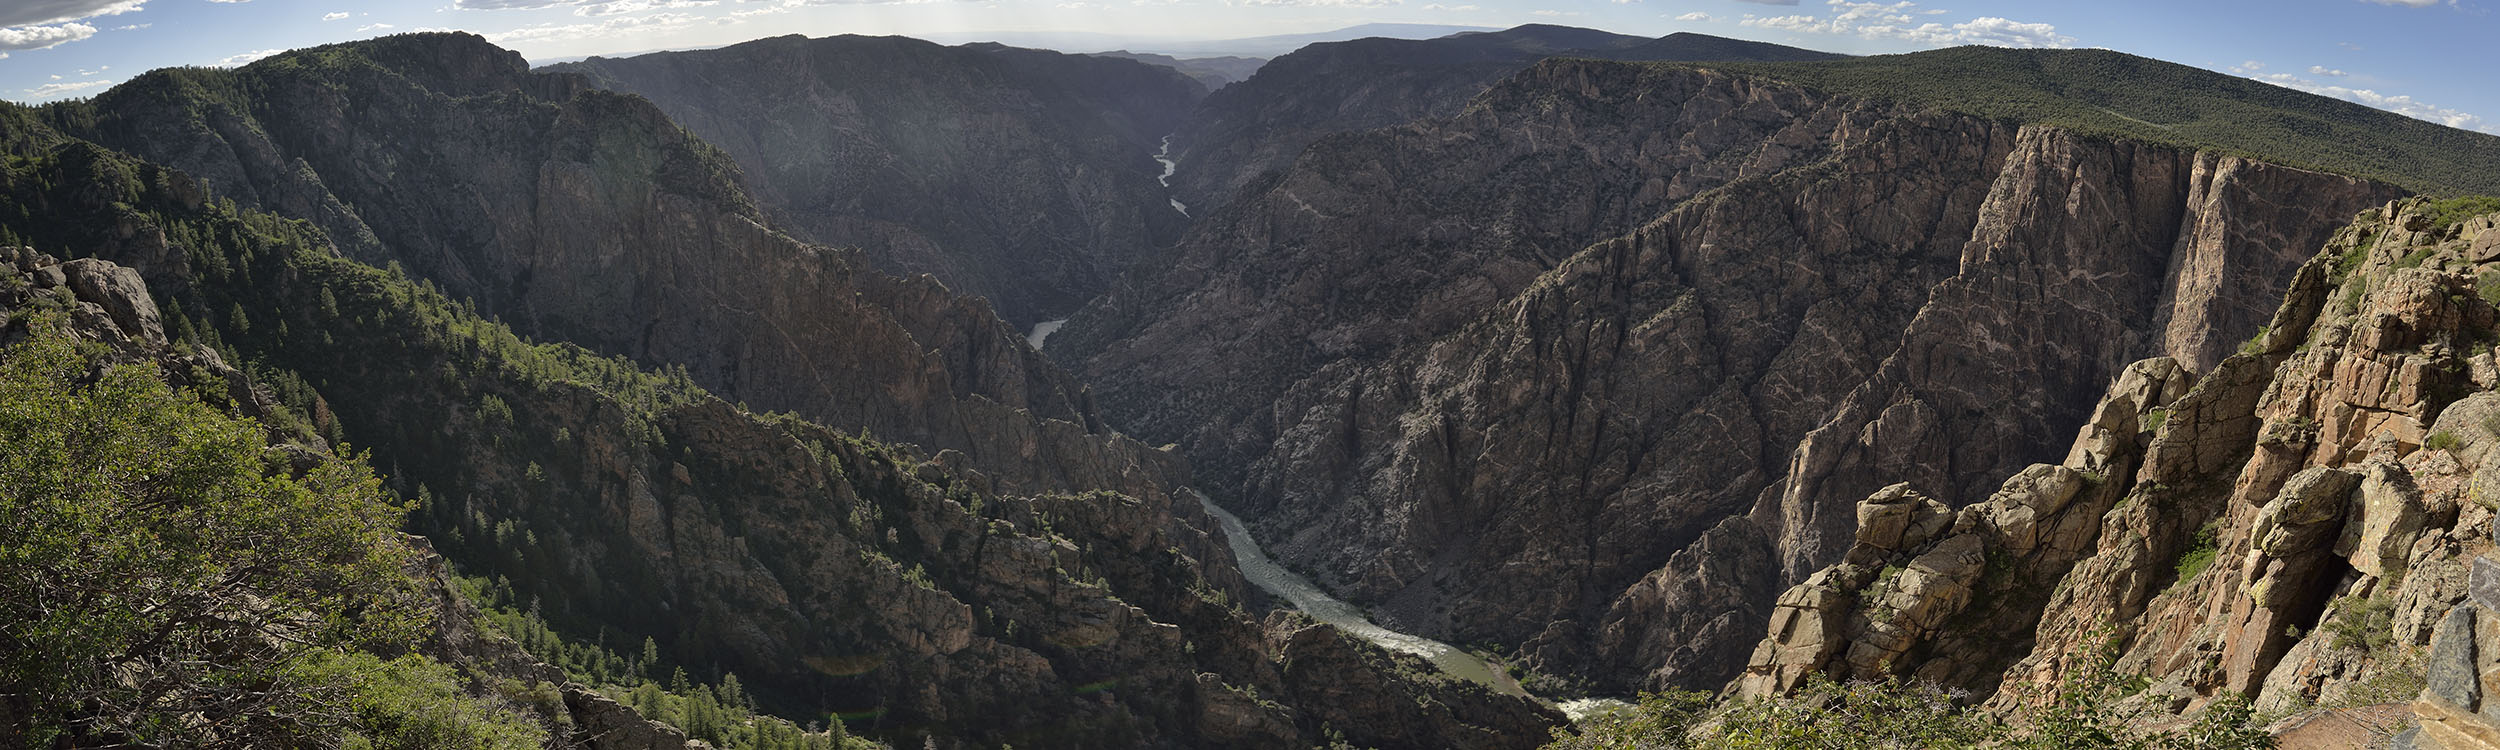 Sunset View, Black Canyon of the Gunnison NP